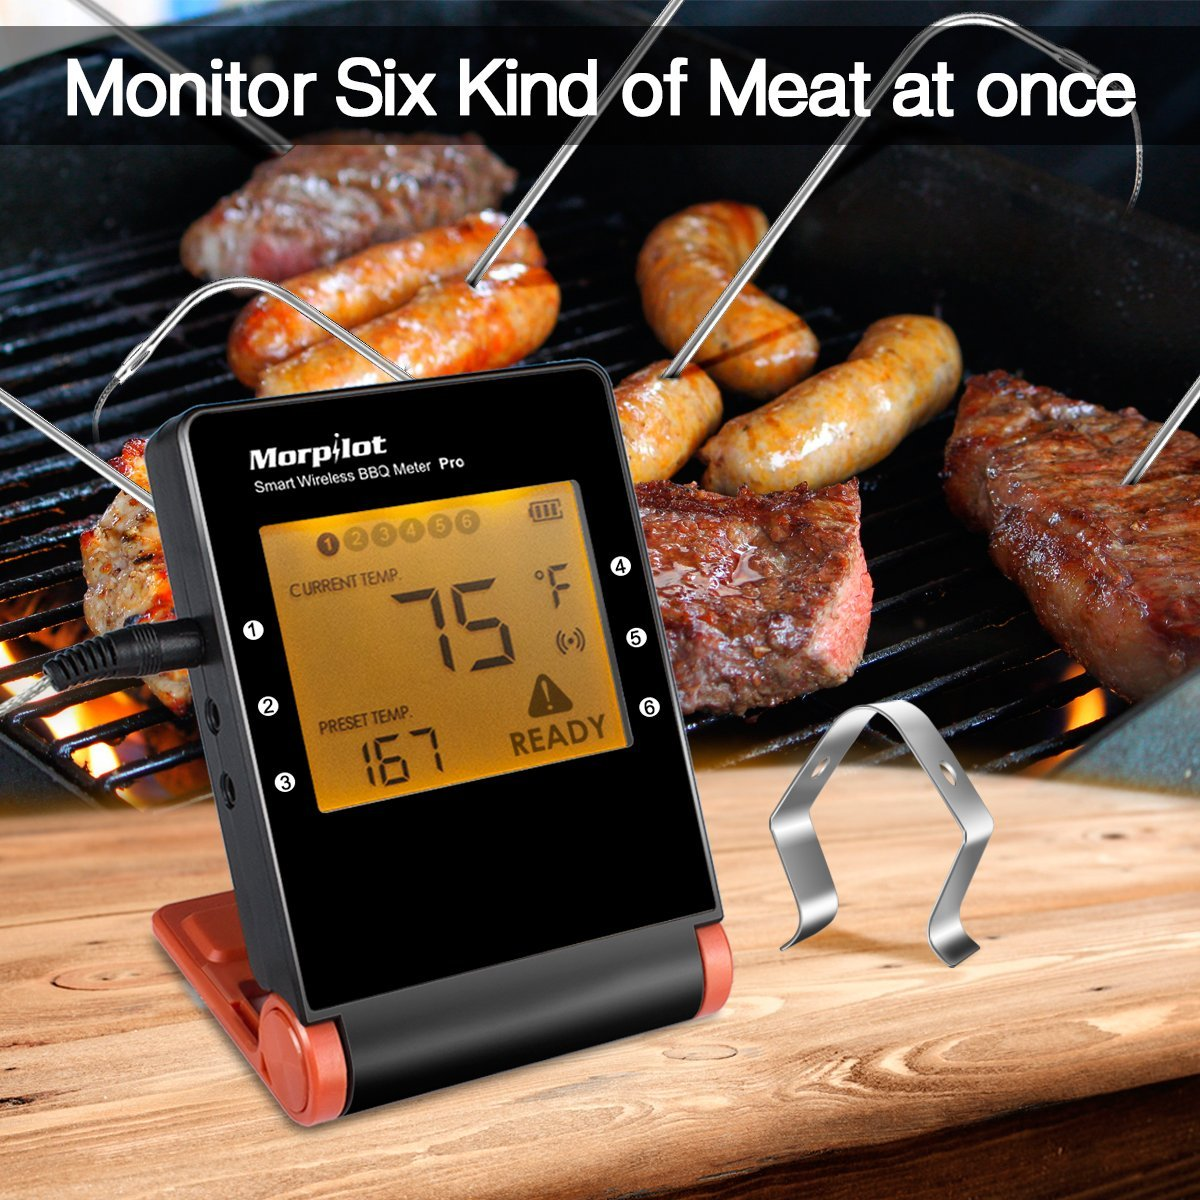 BBQ meat Thermometer Smart Bluetooth Wireless Remote Digital Kitchen Cooking Food Meat Thermometer 6 channel 6 probes